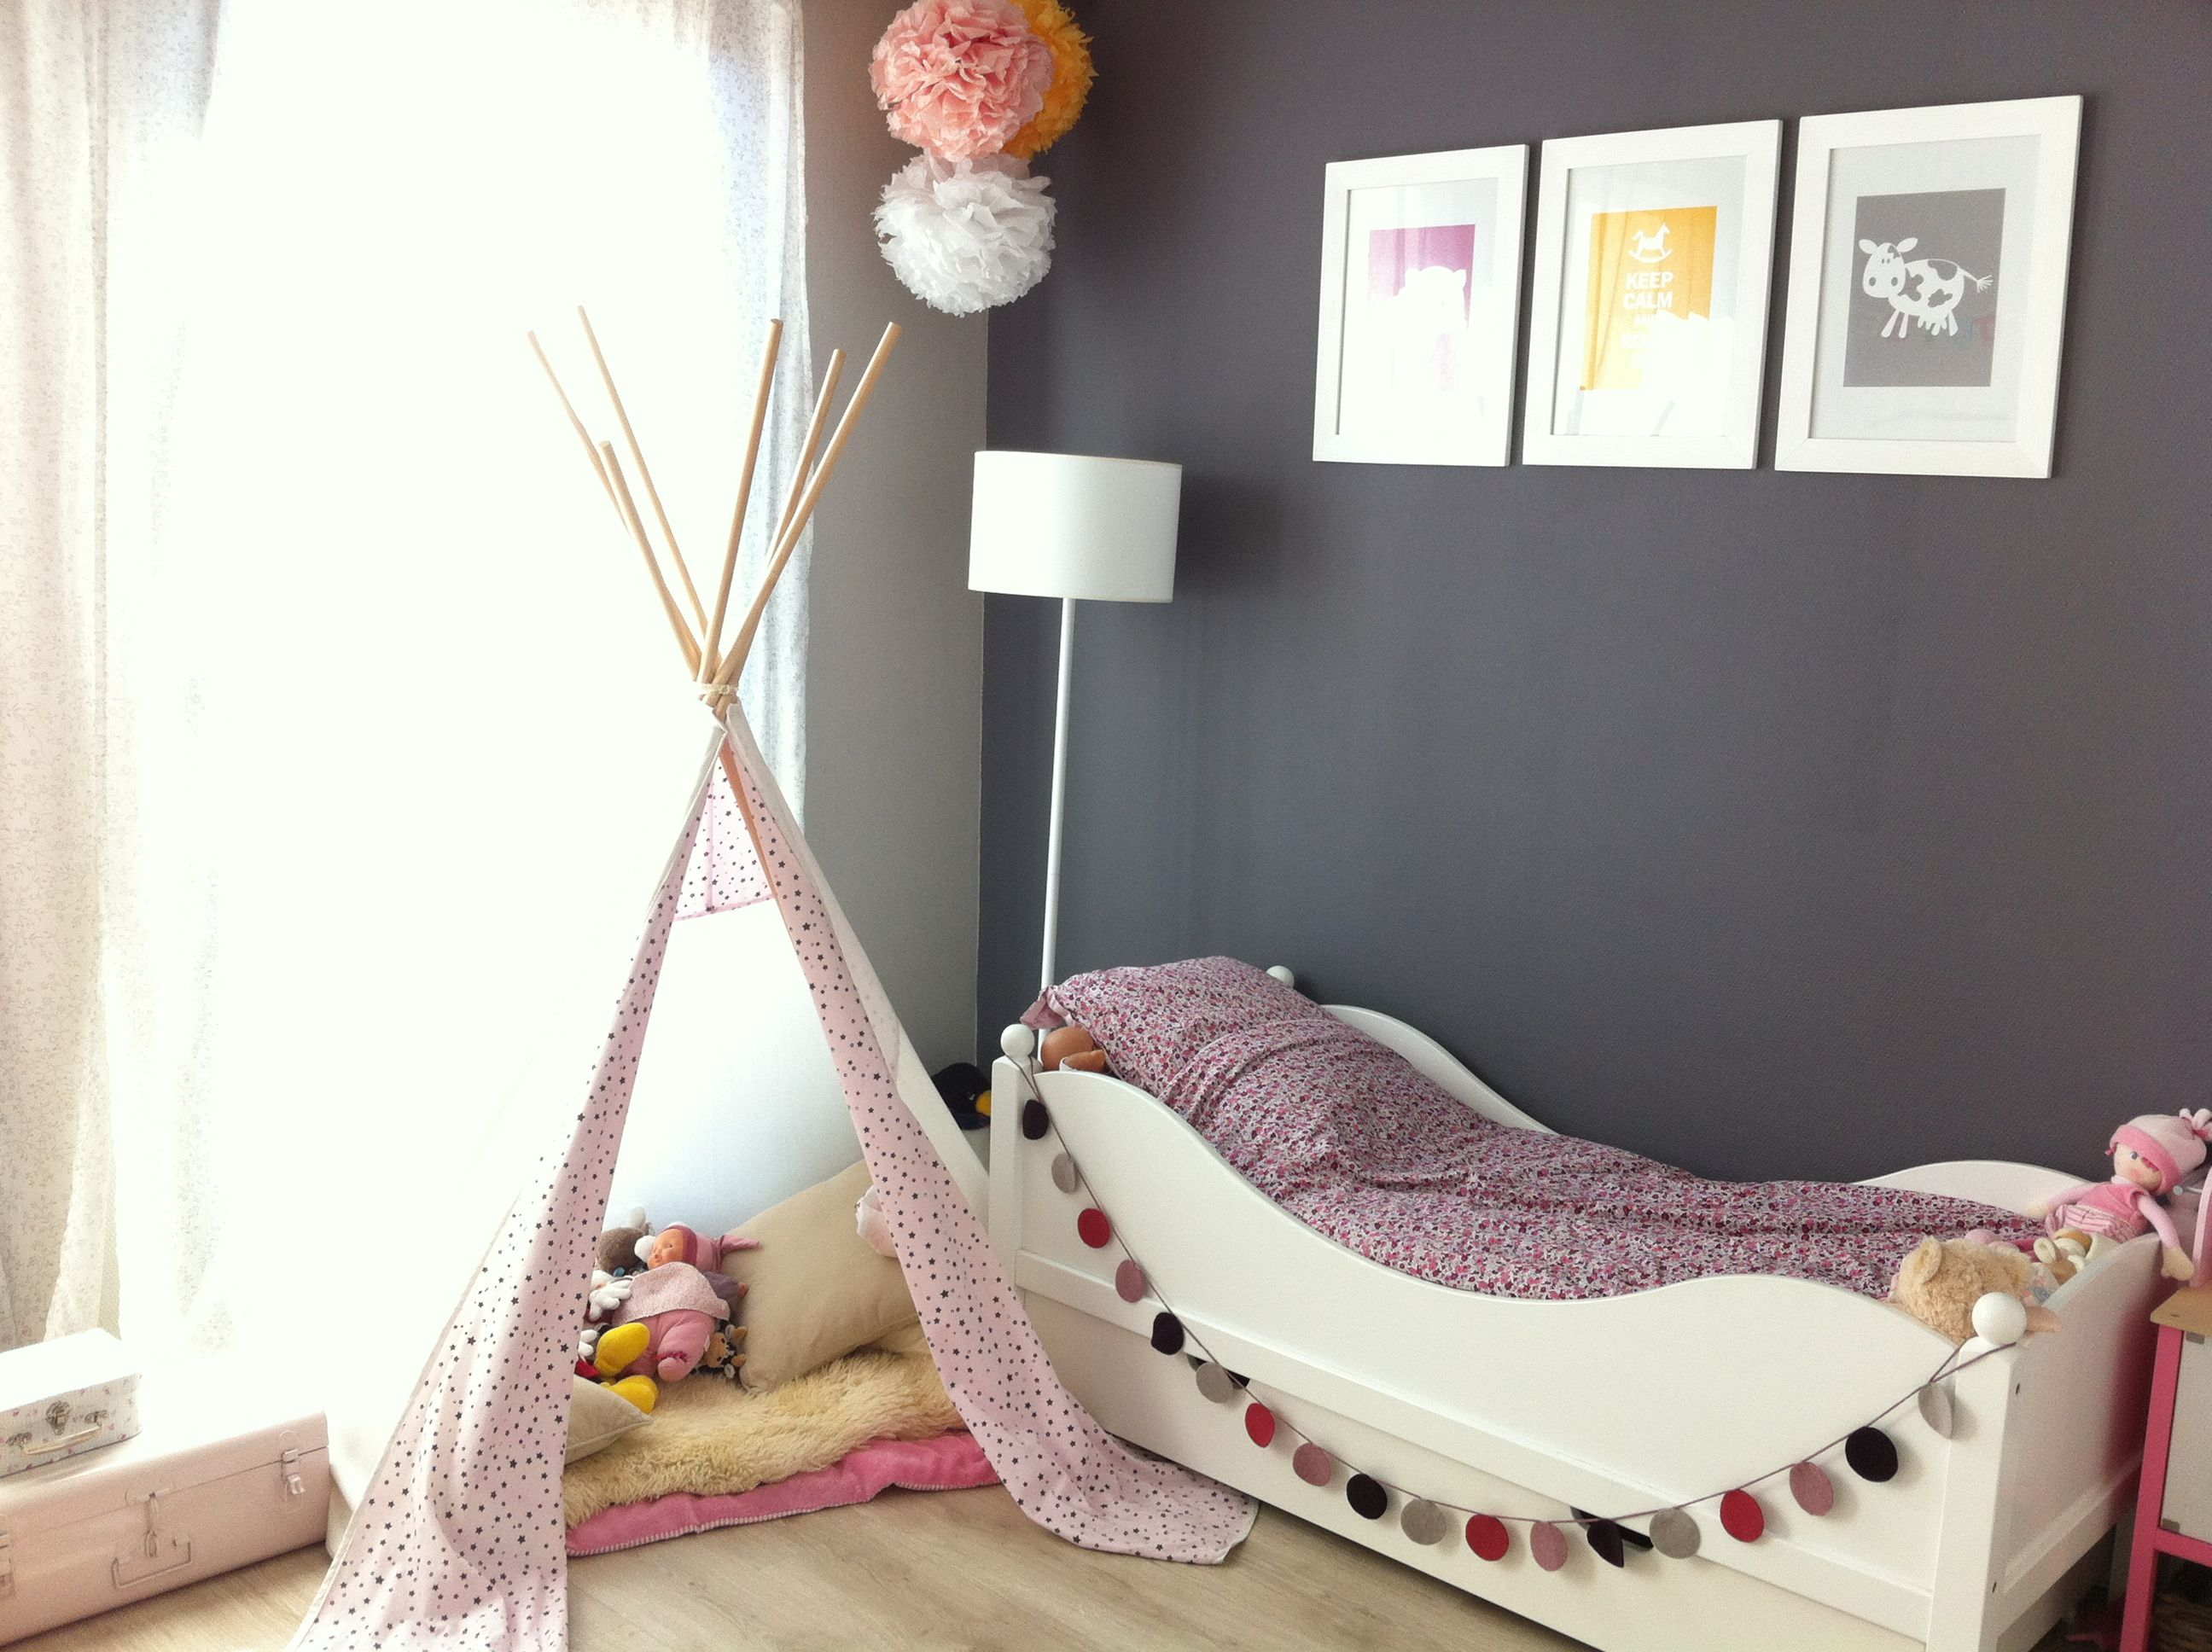 tipi tuto ikea chambre enfant fille chambre enfant pinterest chambre enfant chambre et. Black Bedroom Furniture Sets. Home Design Ideas